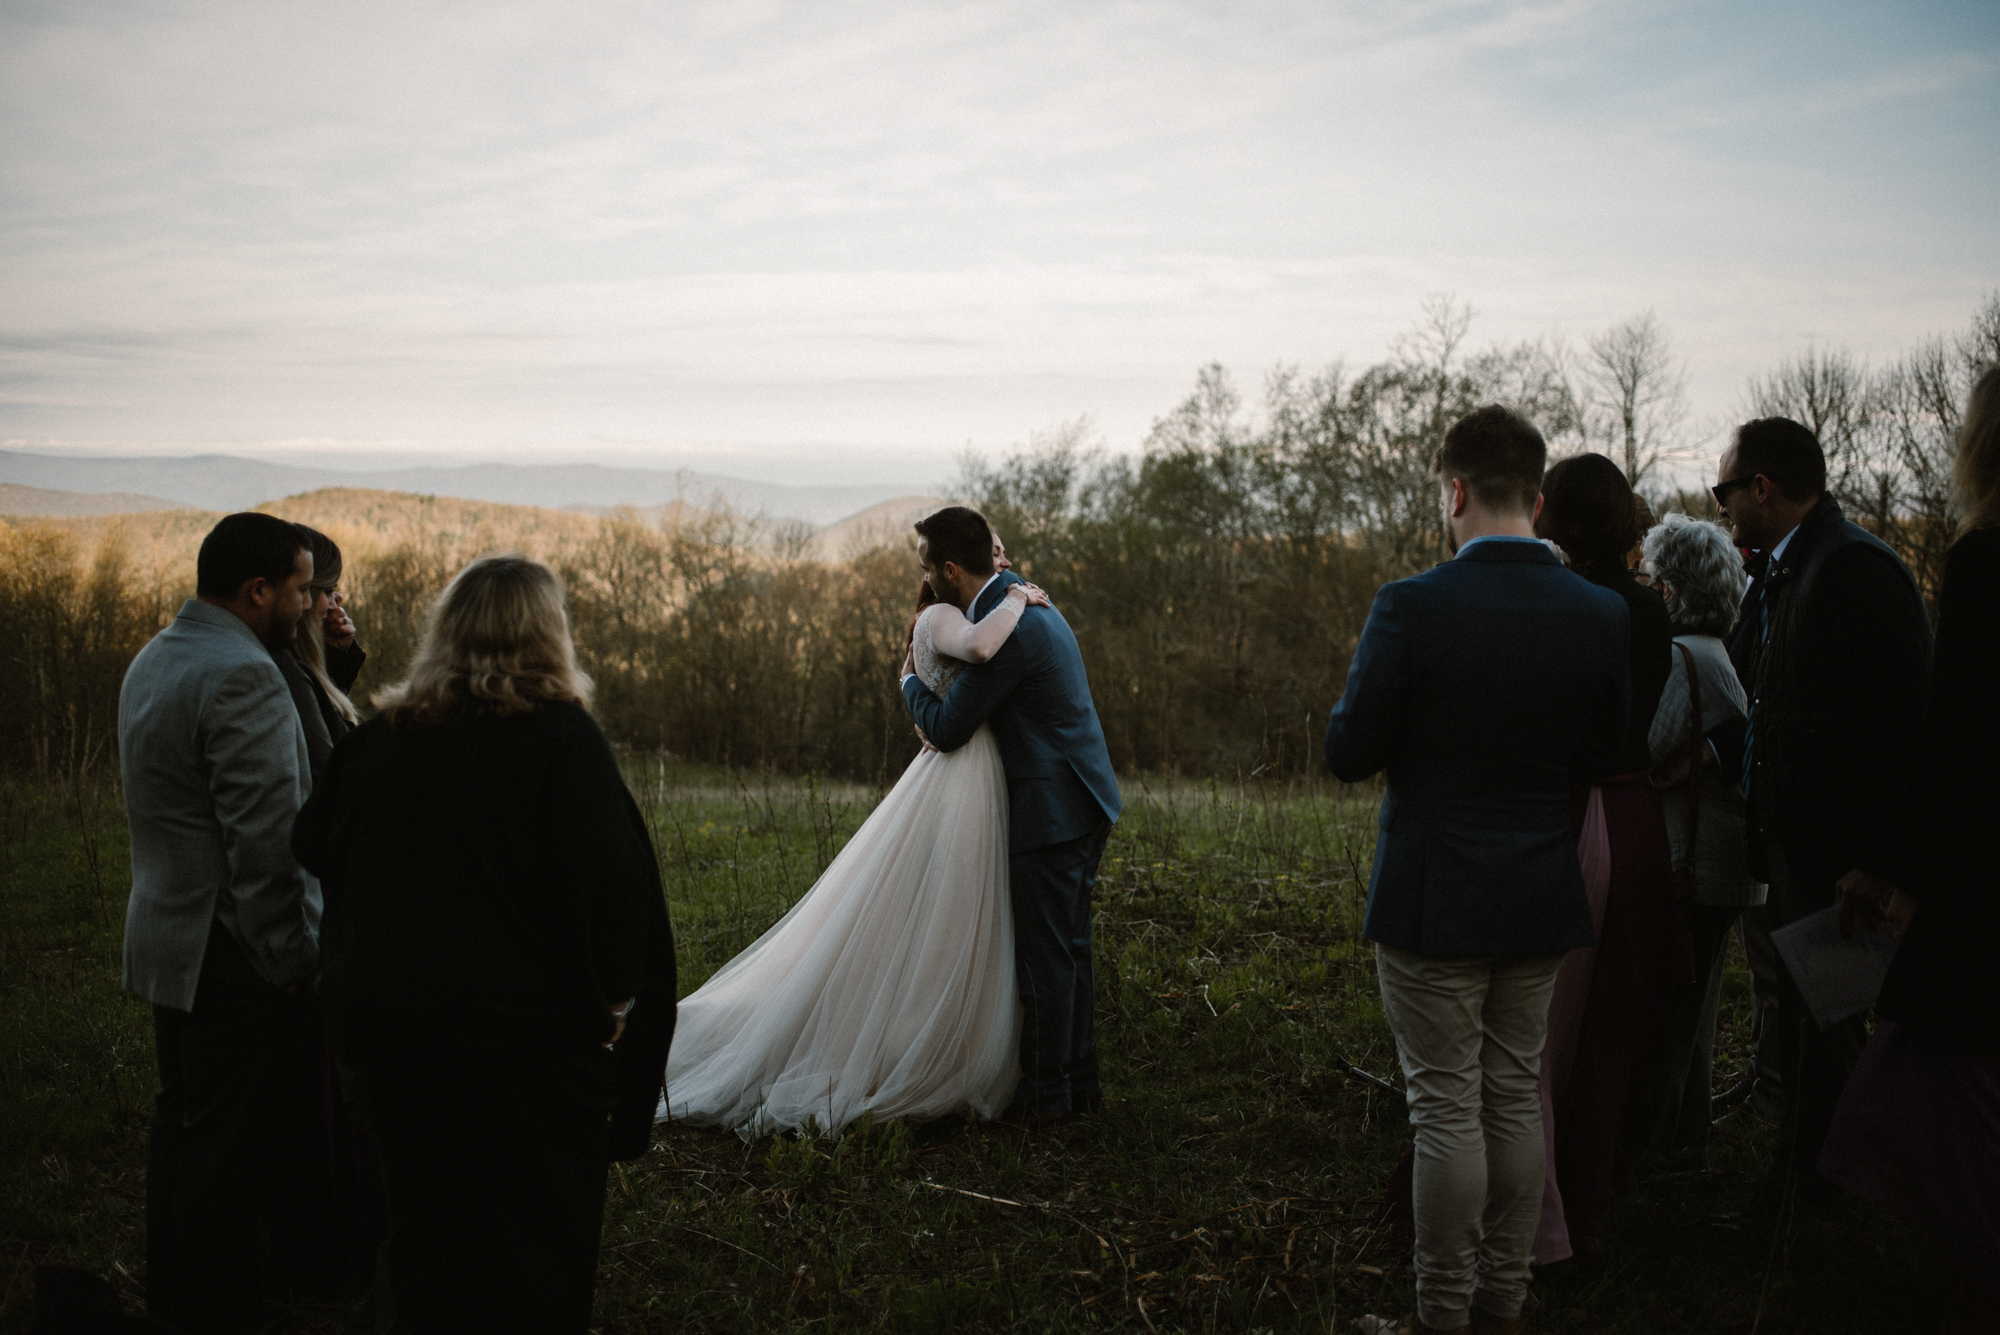 Paula and Andrew - Small Adventurous Wedding in Shenandoah National Park - Blue Ridge Mountain Wedding - White Sails Creative - Mountain Elopement_20.jpg